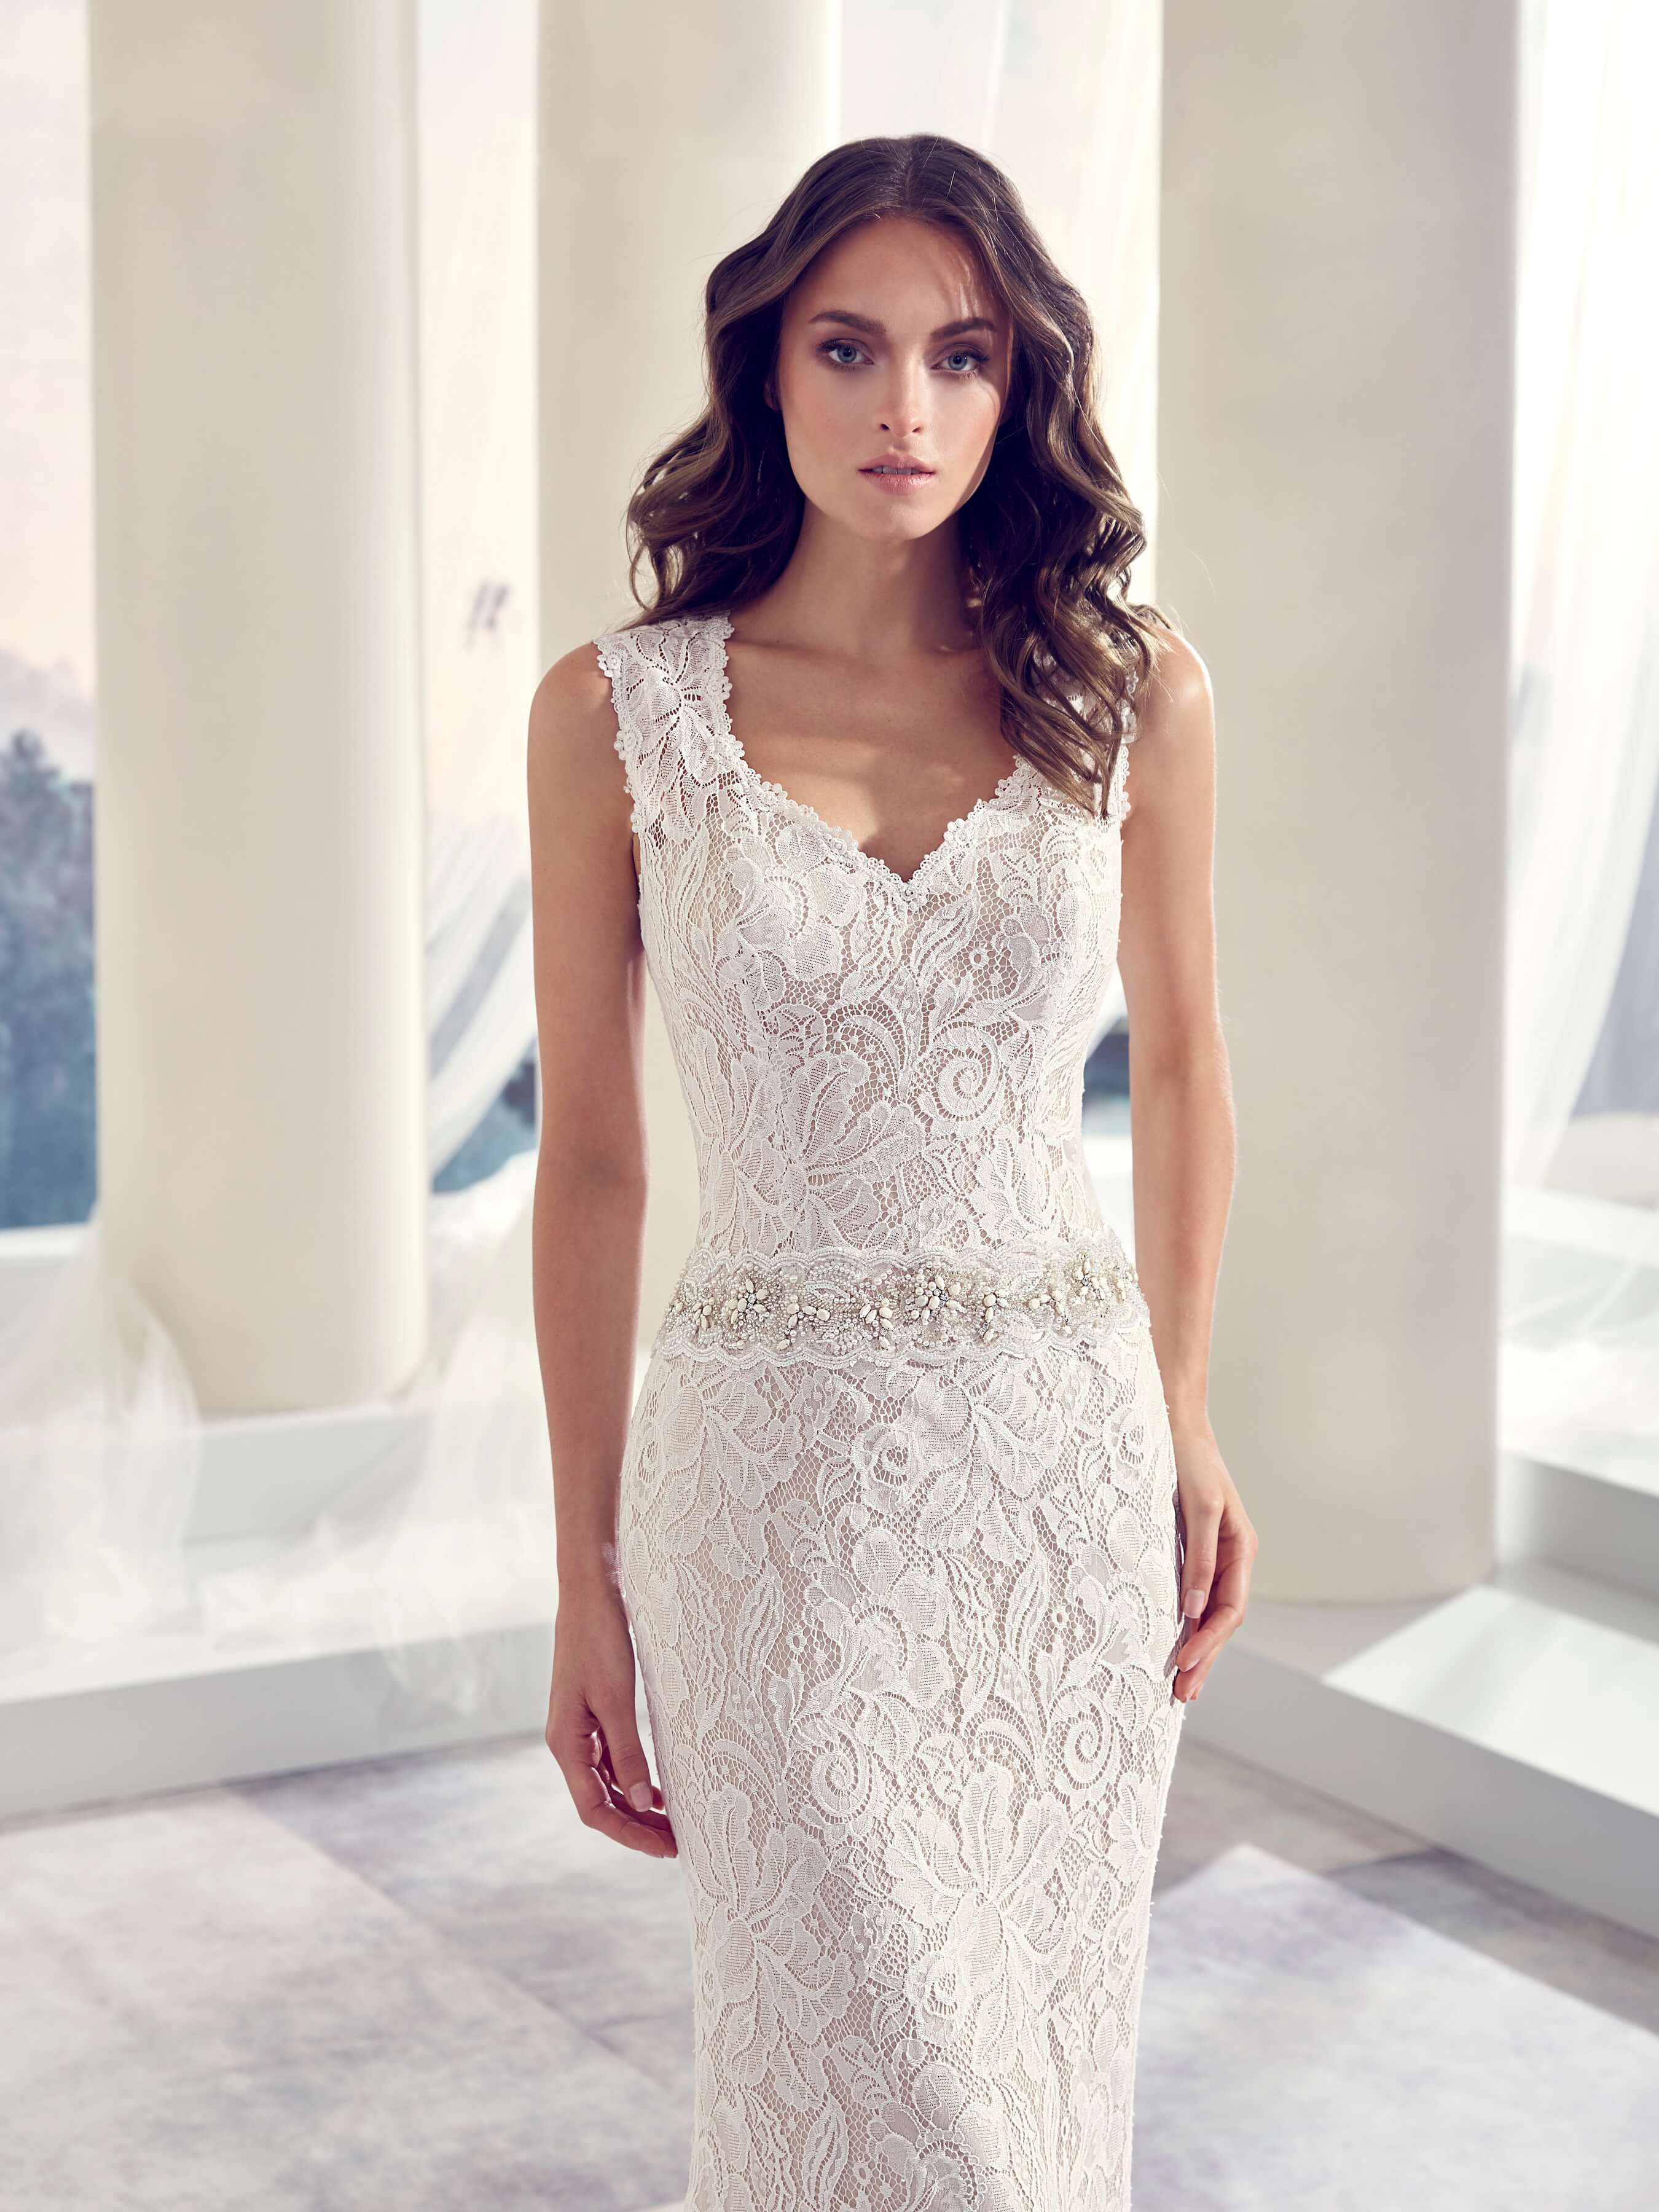 TIPTON wedding dresses and gowns